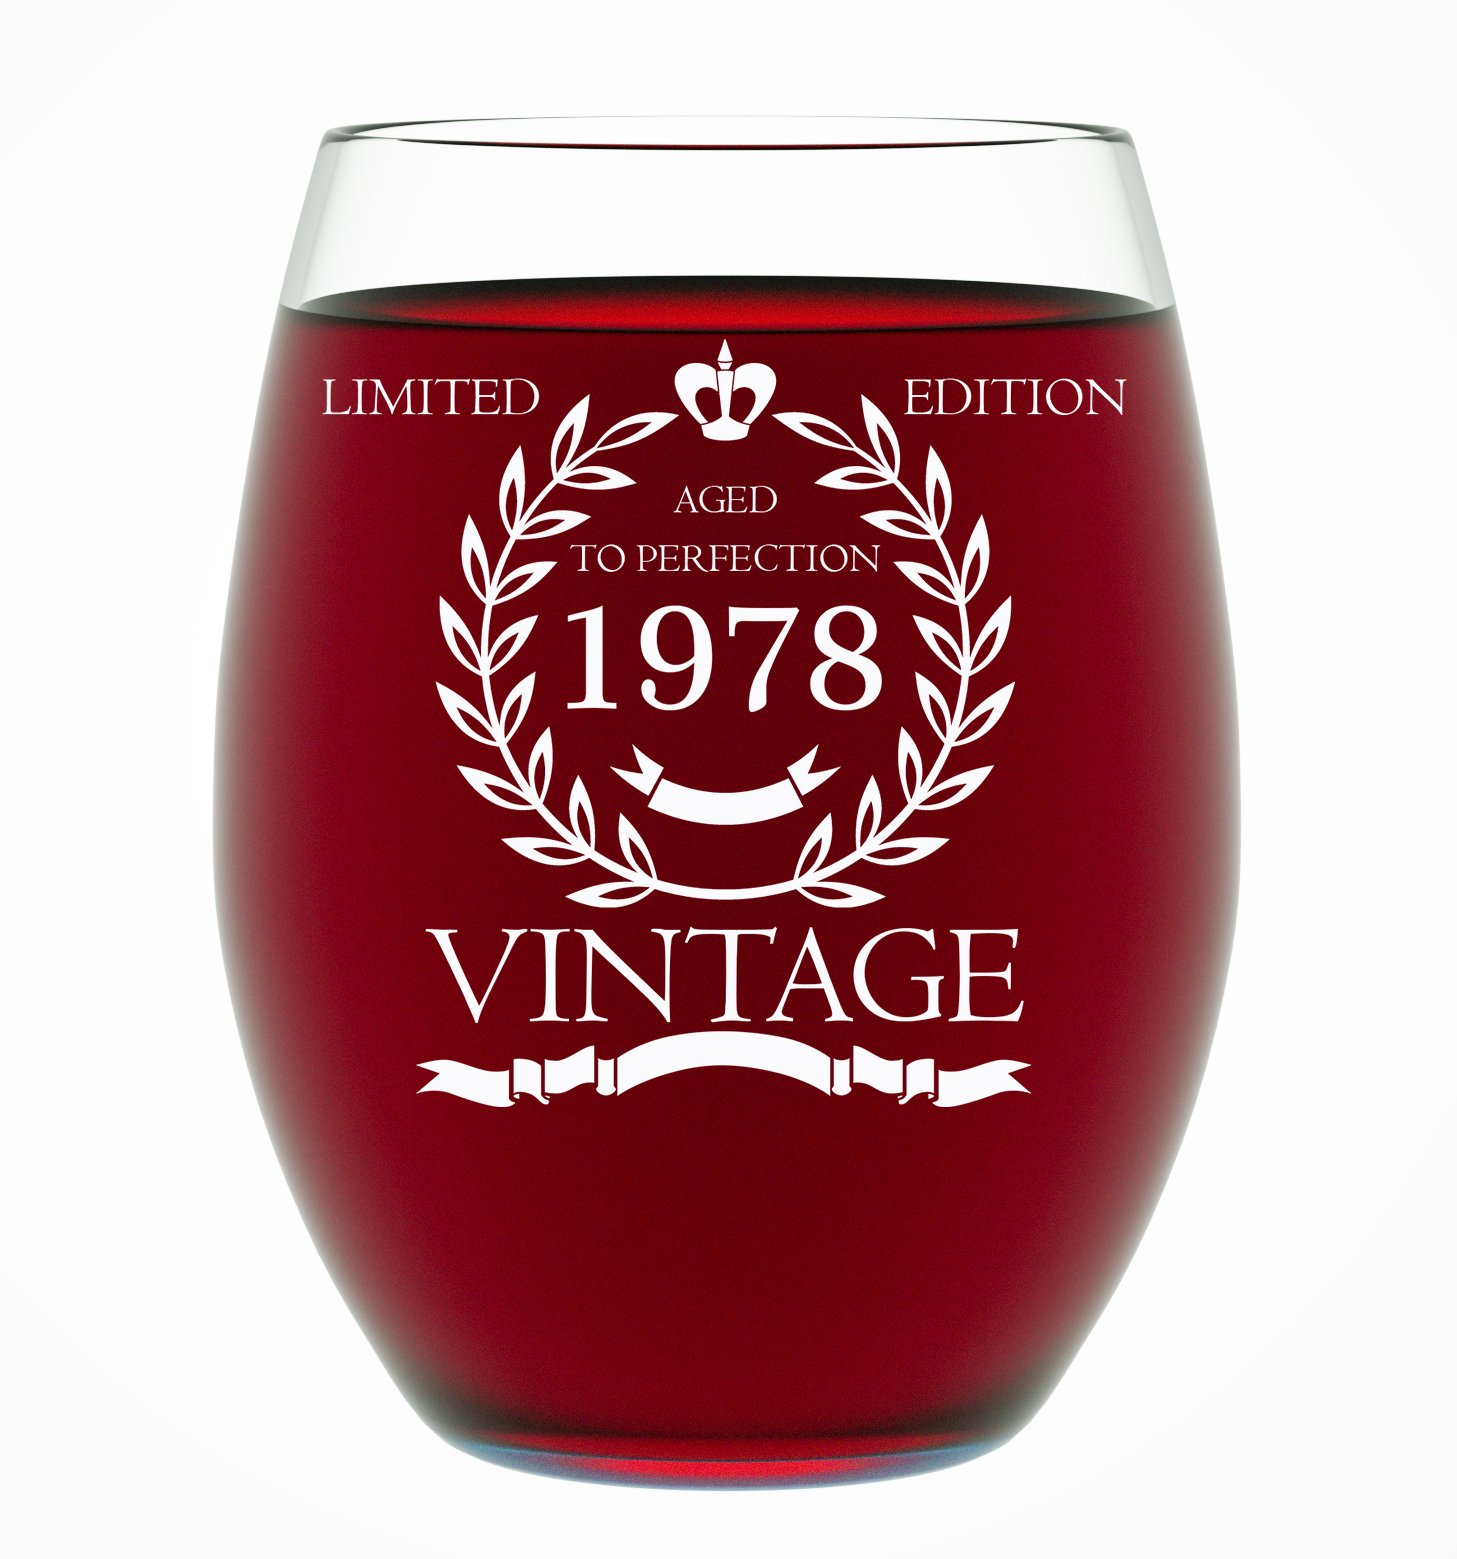 1978 40th Birthday Gifts for Women and Men Wine Glass - Funny Vintage Anniversary Gift Ideas for Him or Her, Husband or Wife Wine Glass for Mom 15 OZ - Wine Glass Birthday Gifts